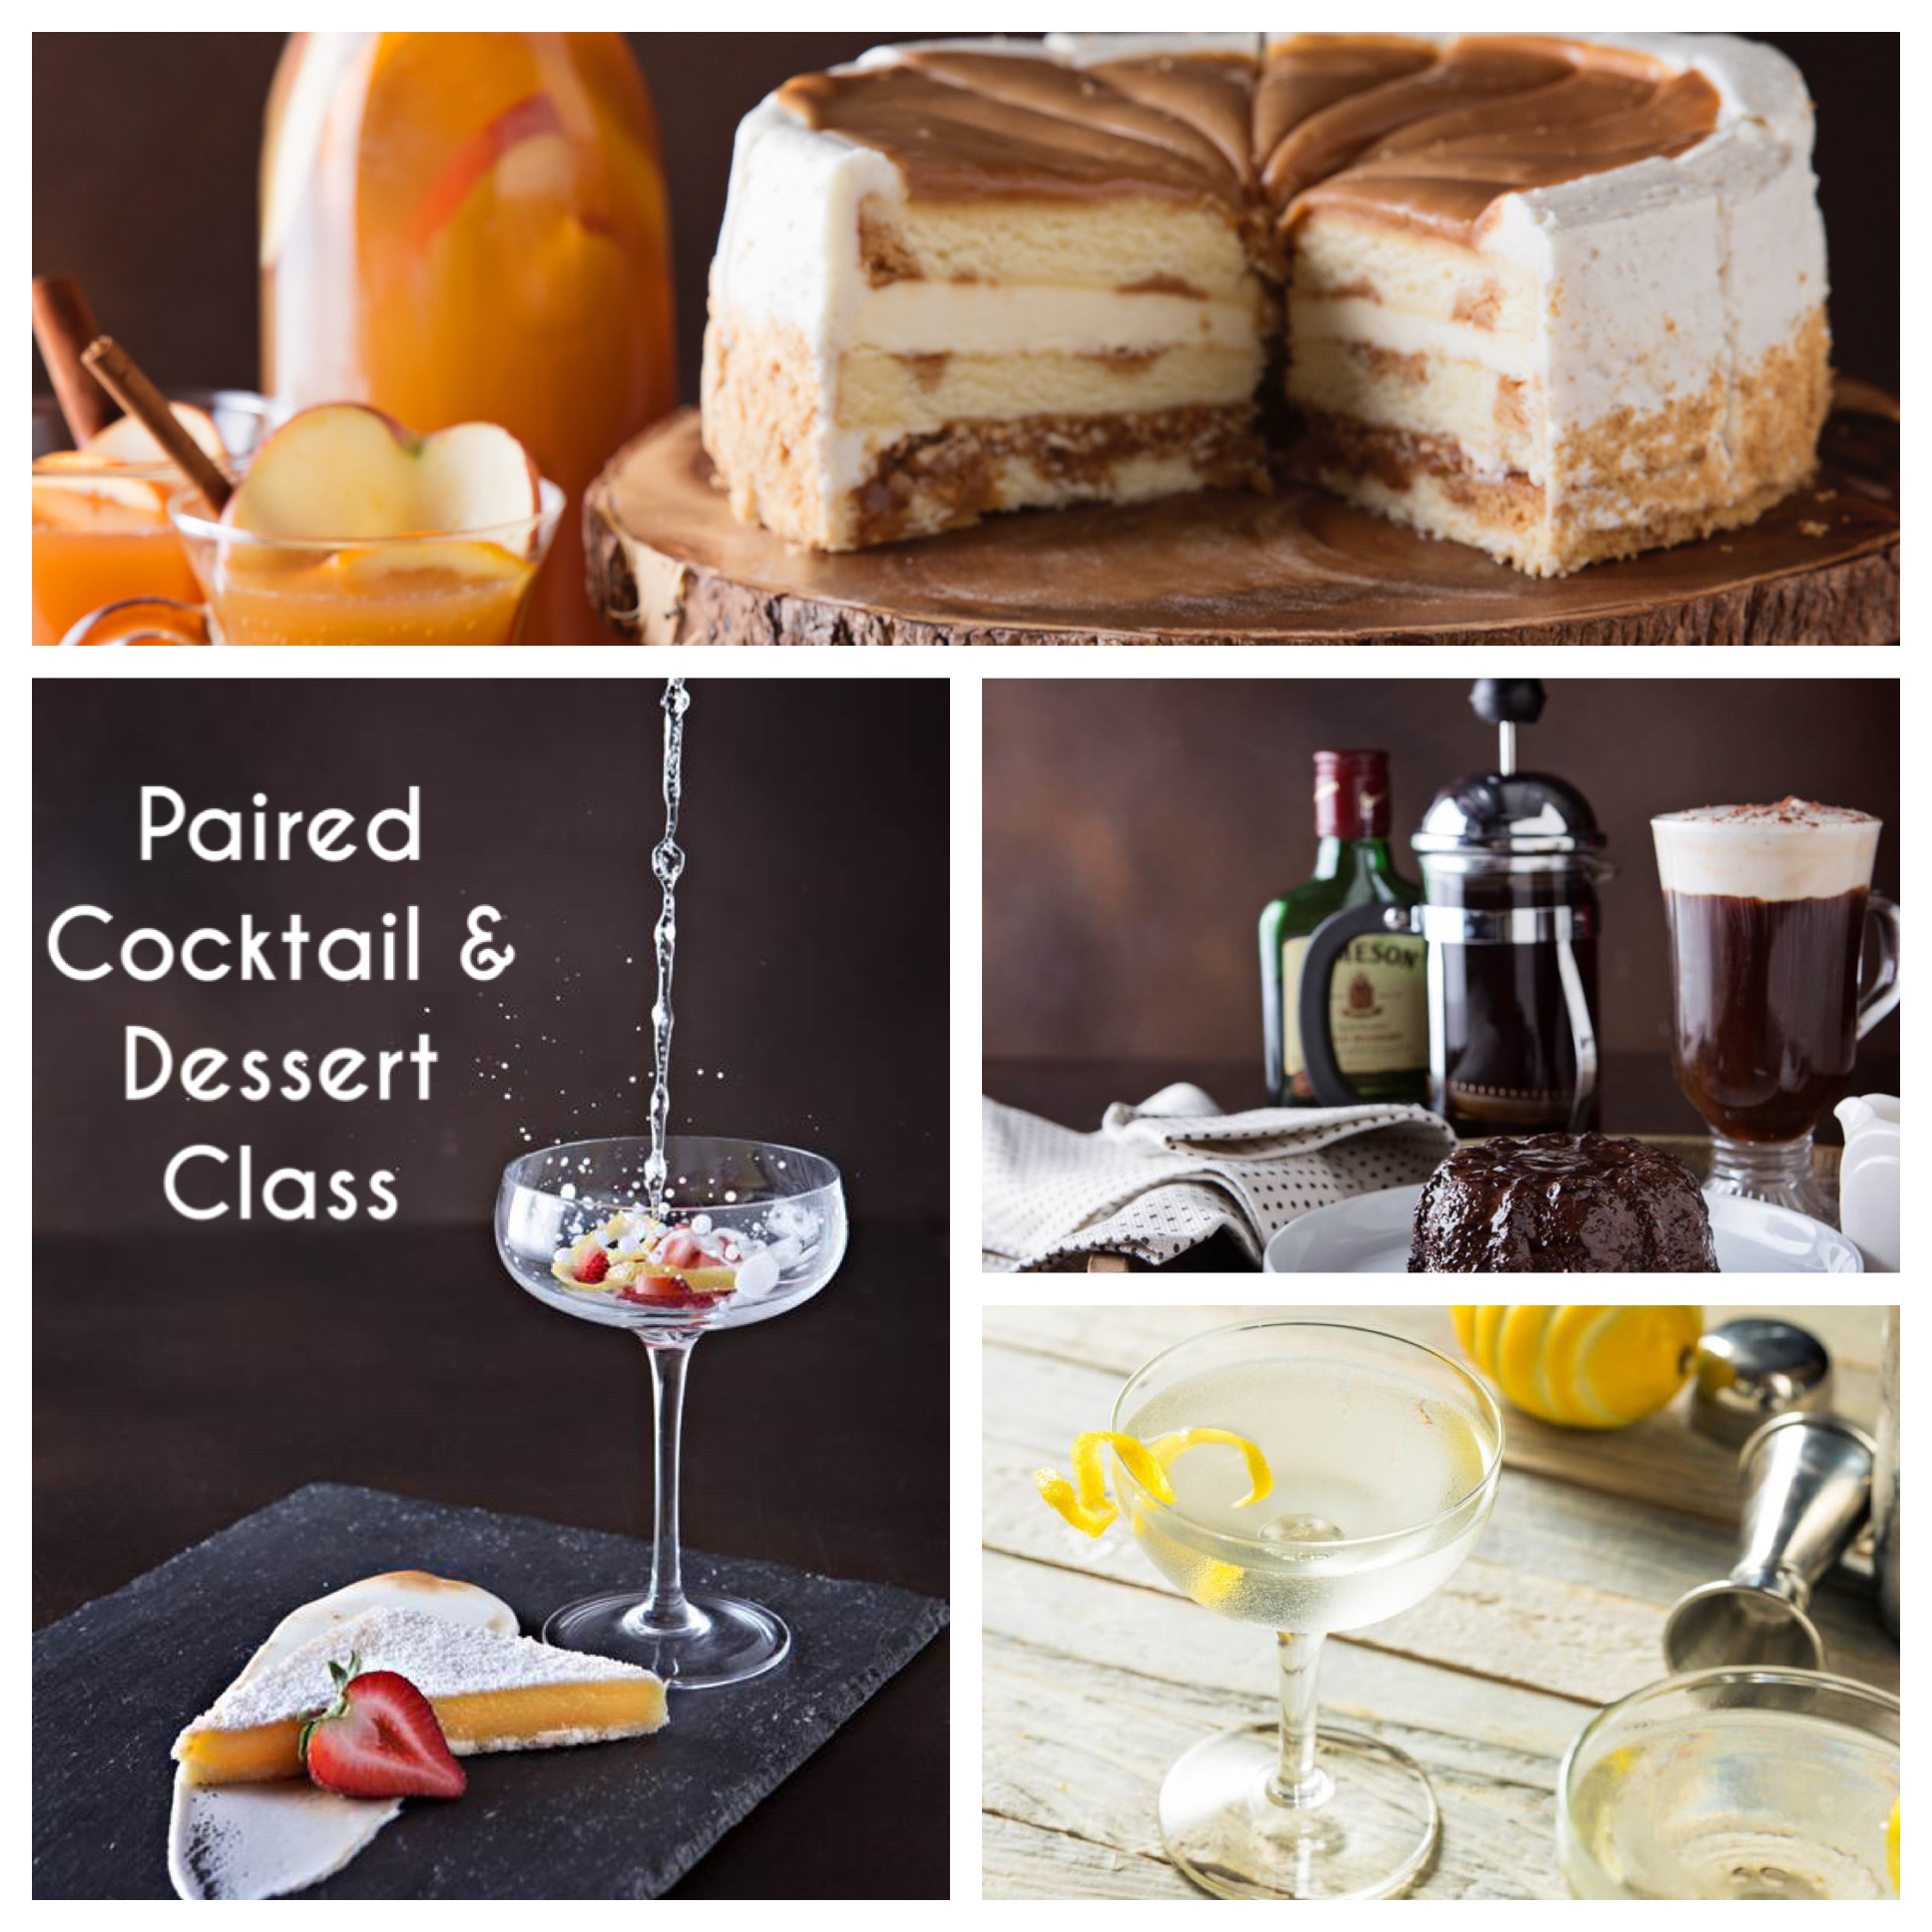 A Learn to Make 4 Desserts and Cocktails  4 Lucious Libations Paired with 4 Decadent Desserts experience project by Yaymaker